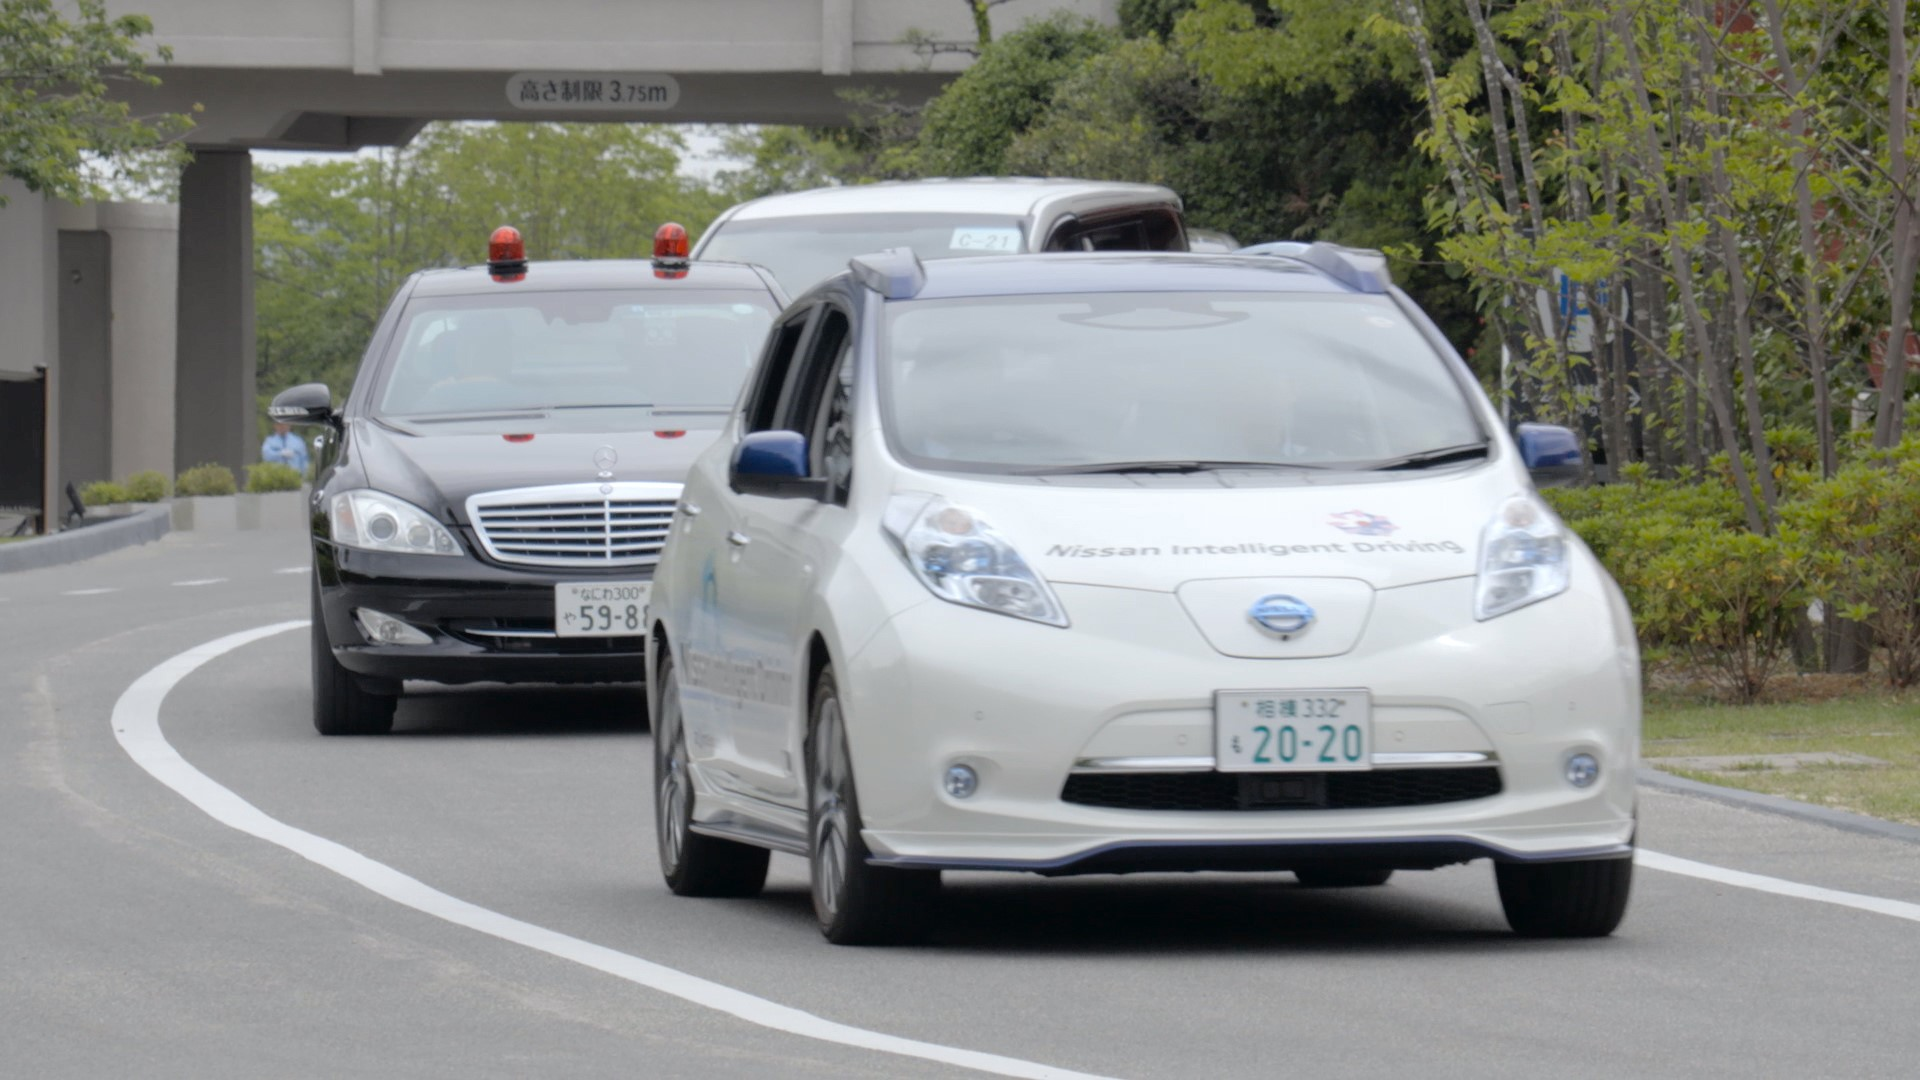 Nissan demonstrates autonomous car technology at G7 Summit